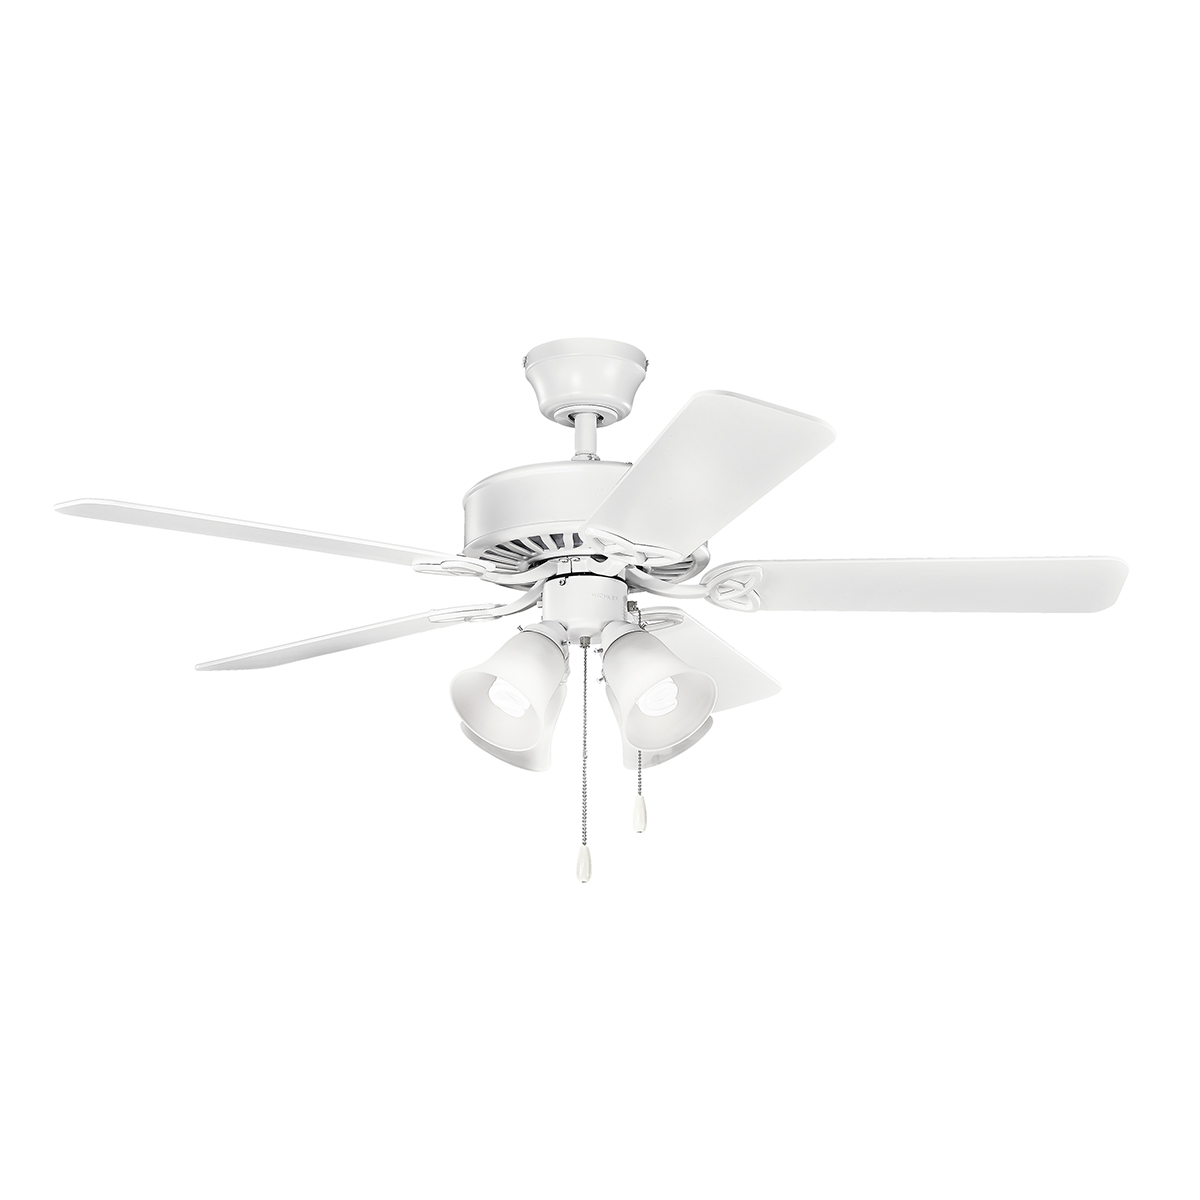 50 inchCeiling Fan from the Renew Premier collection by Kichler 339240MWH